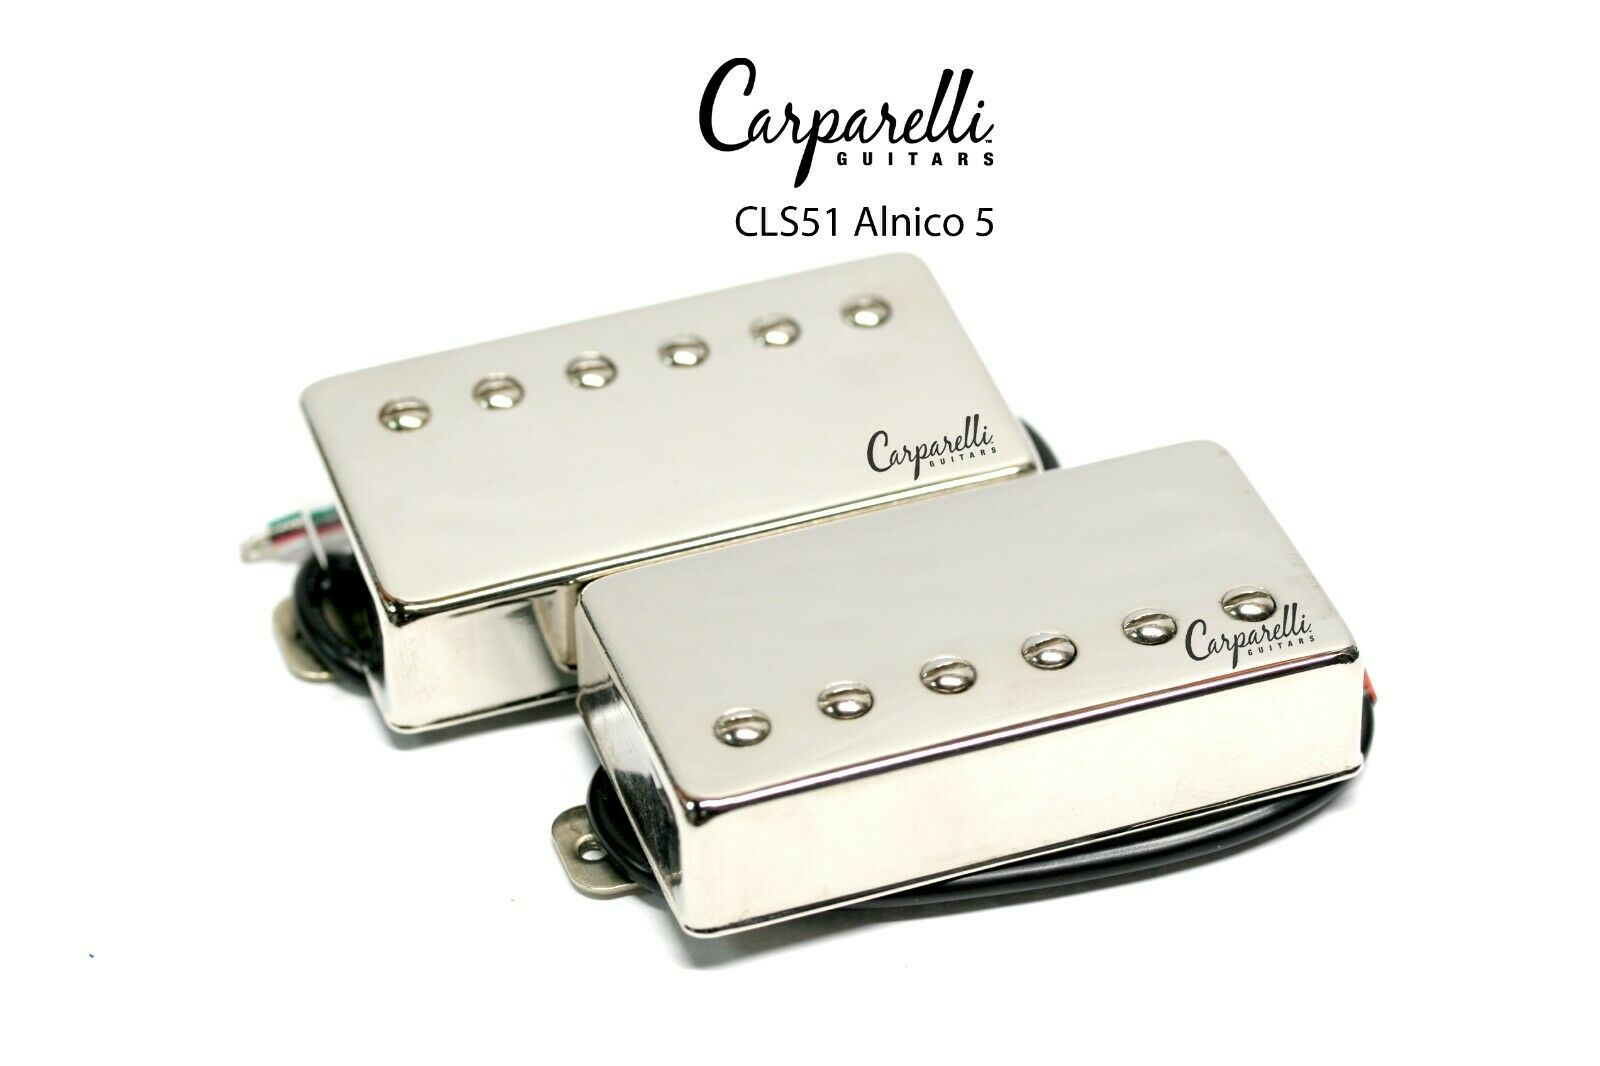 Carparelli CLS51 Alnico 5 Vintage Nickel Humbucker Set Neck Bridge